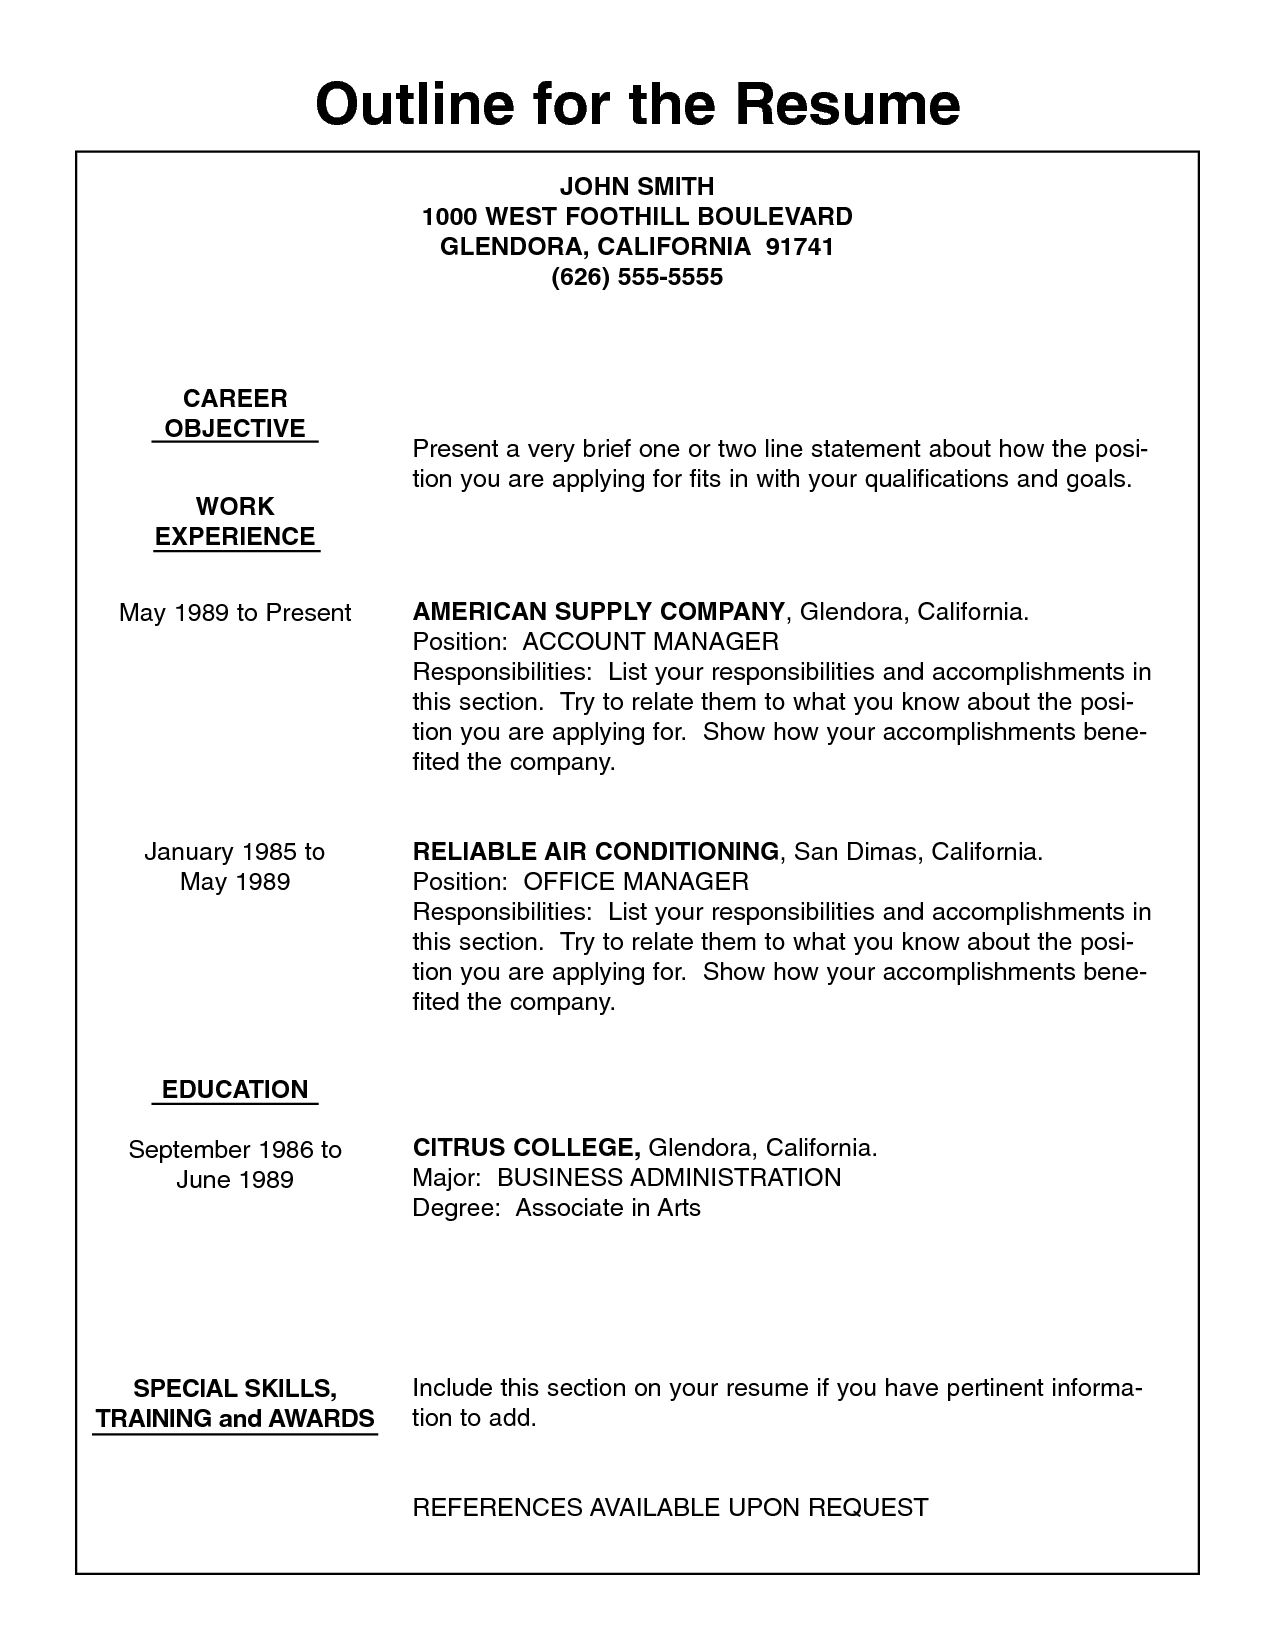 Resume Format Outline Resume outline, Resume layout, Job